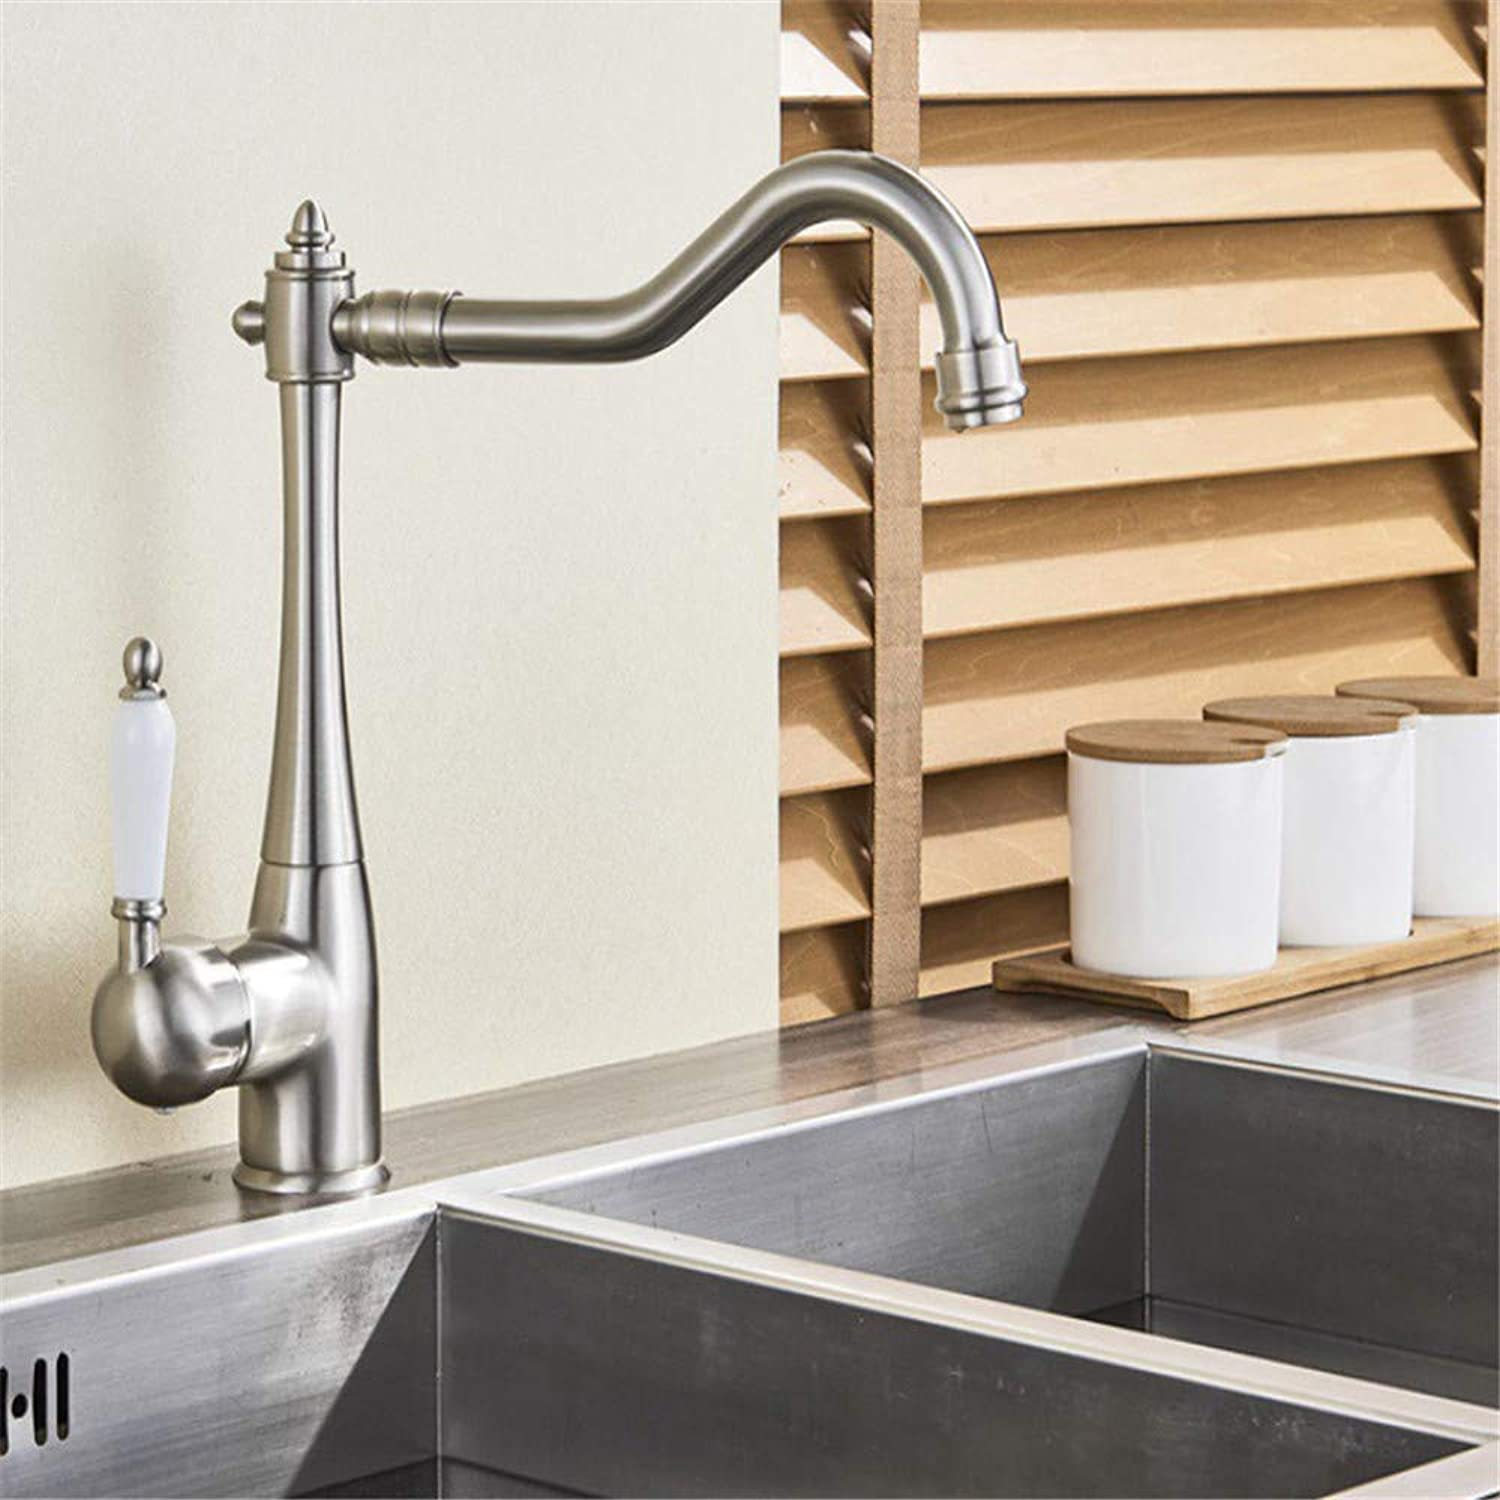 Sink Chrome-Plated Brass Faucet Brushed Nickle Finished Kitchen Faucets Single Lever Mixer Tap Deck Mounted Single Handle Single Hole